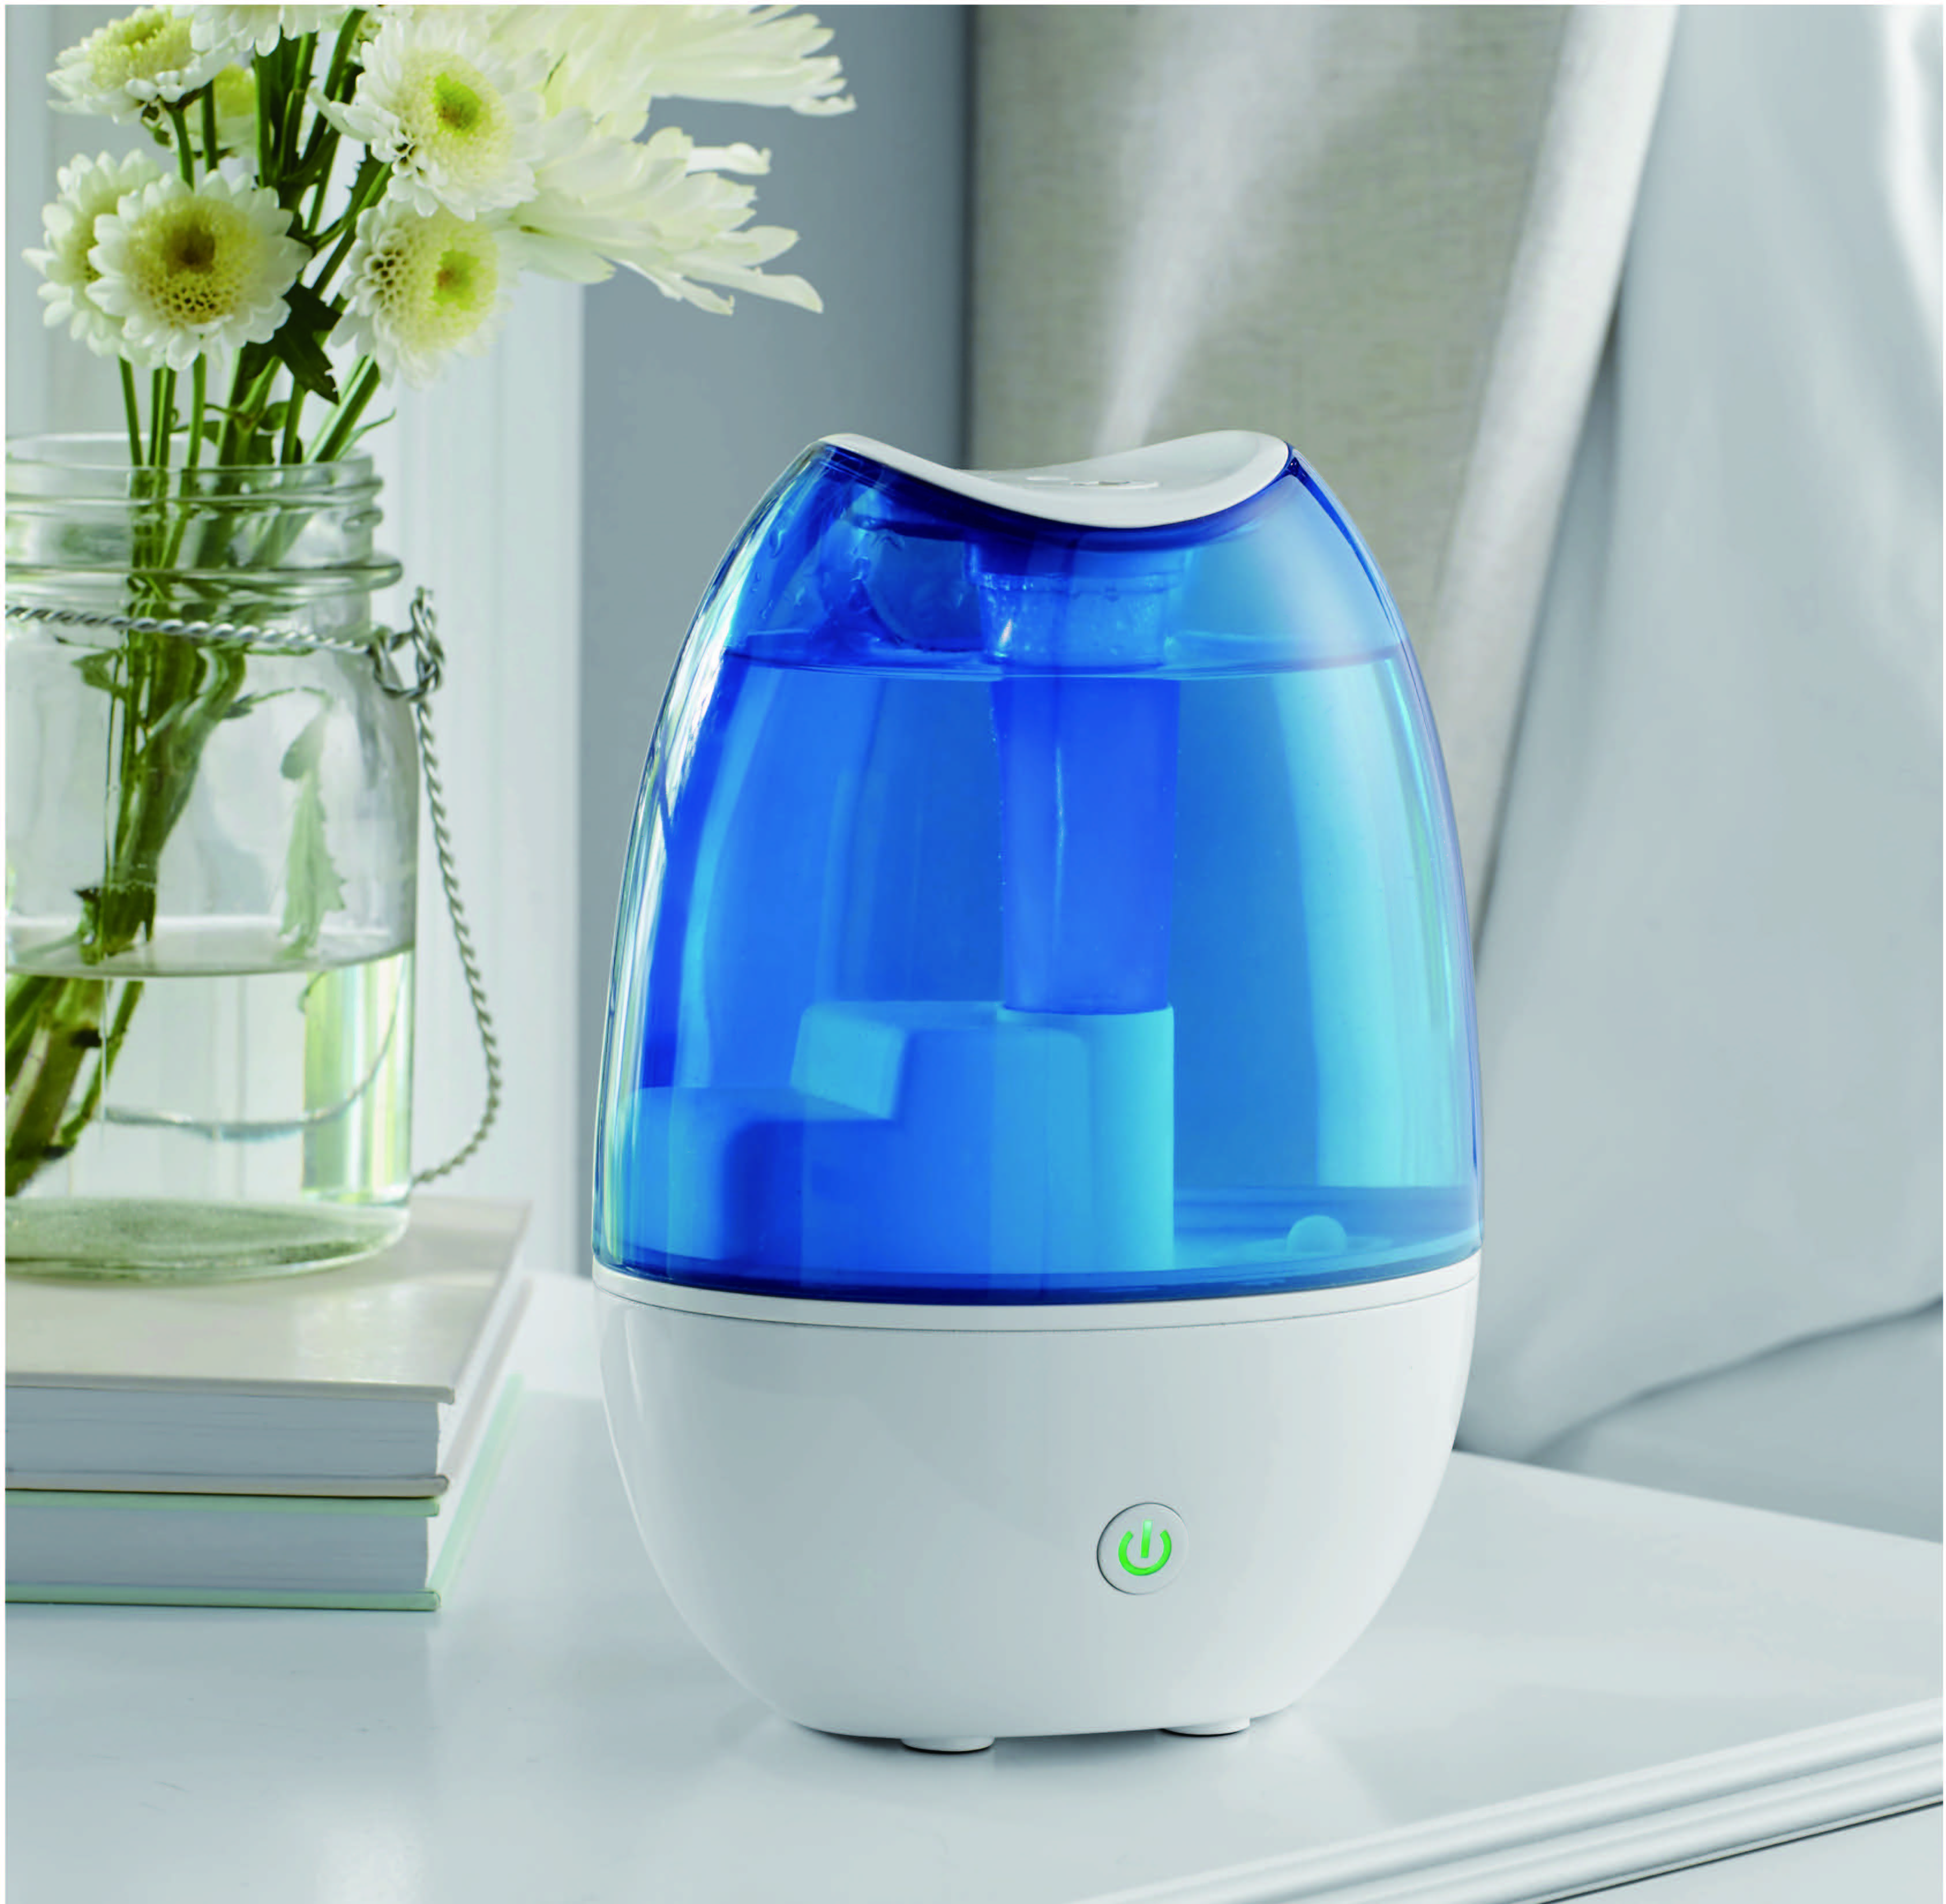 Mainstays Humidifier H12-01 BLUE